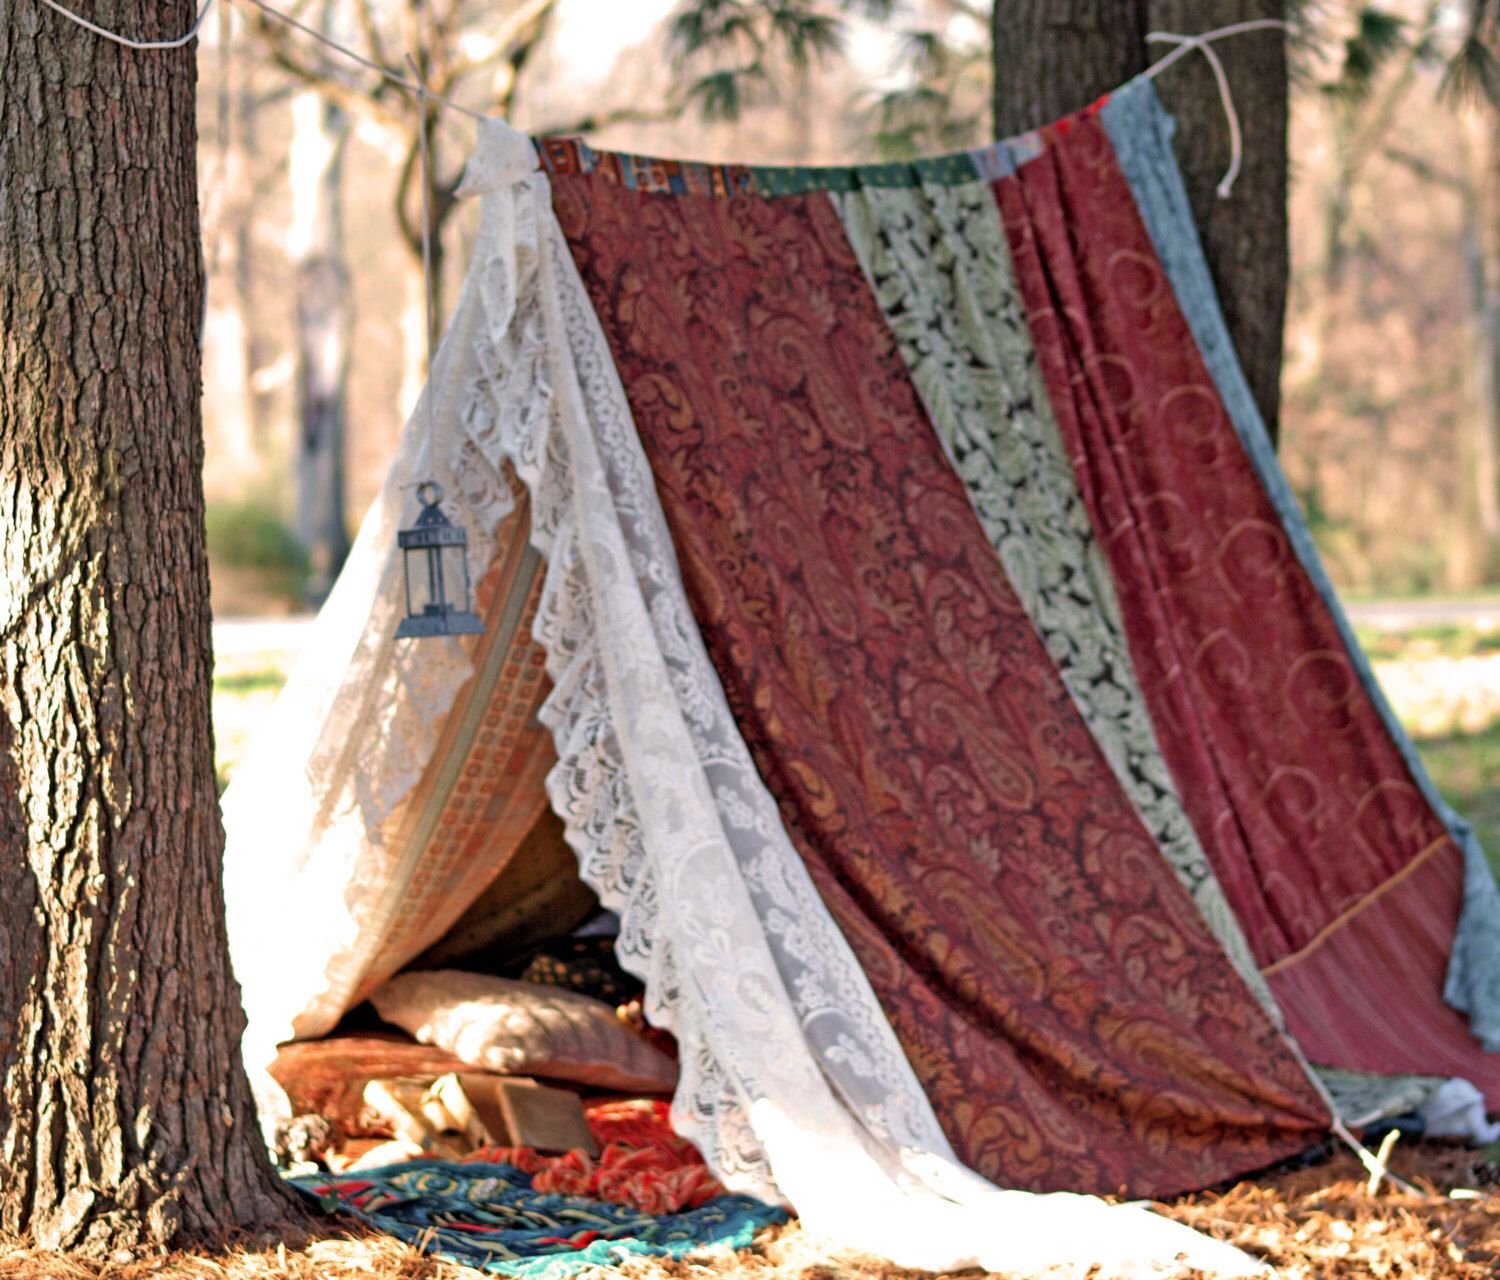 Bed canopy gypsy - Boho Meditation Vintage Gypsy Patchwork Lace Tent Bed Canopy Wedding Teepee Photo Prop Play Tent Bohemian